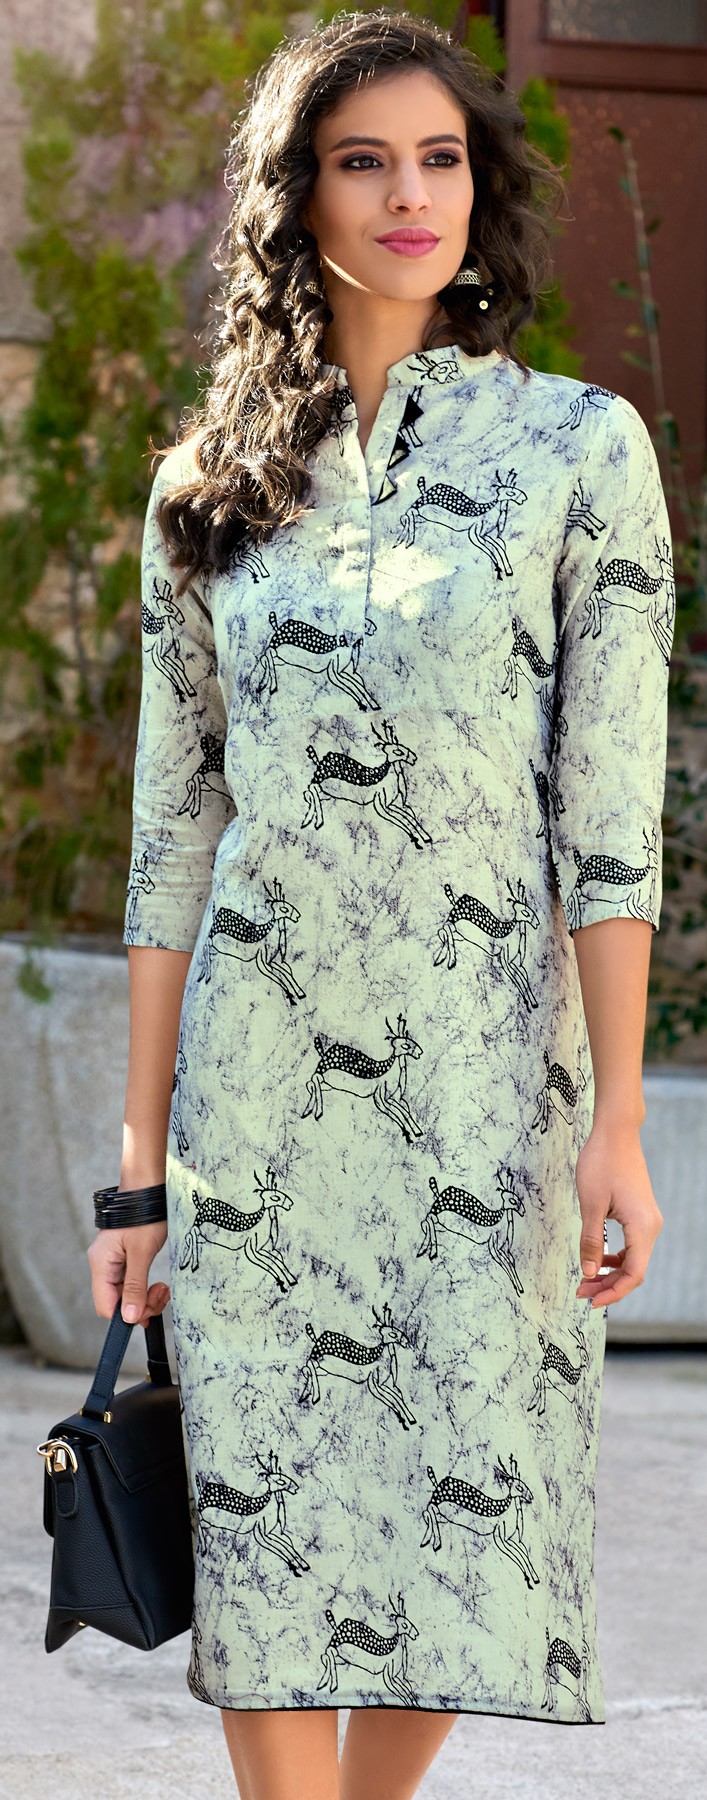 Mesmerising Off-White Colored  Printed Cotton Kurti